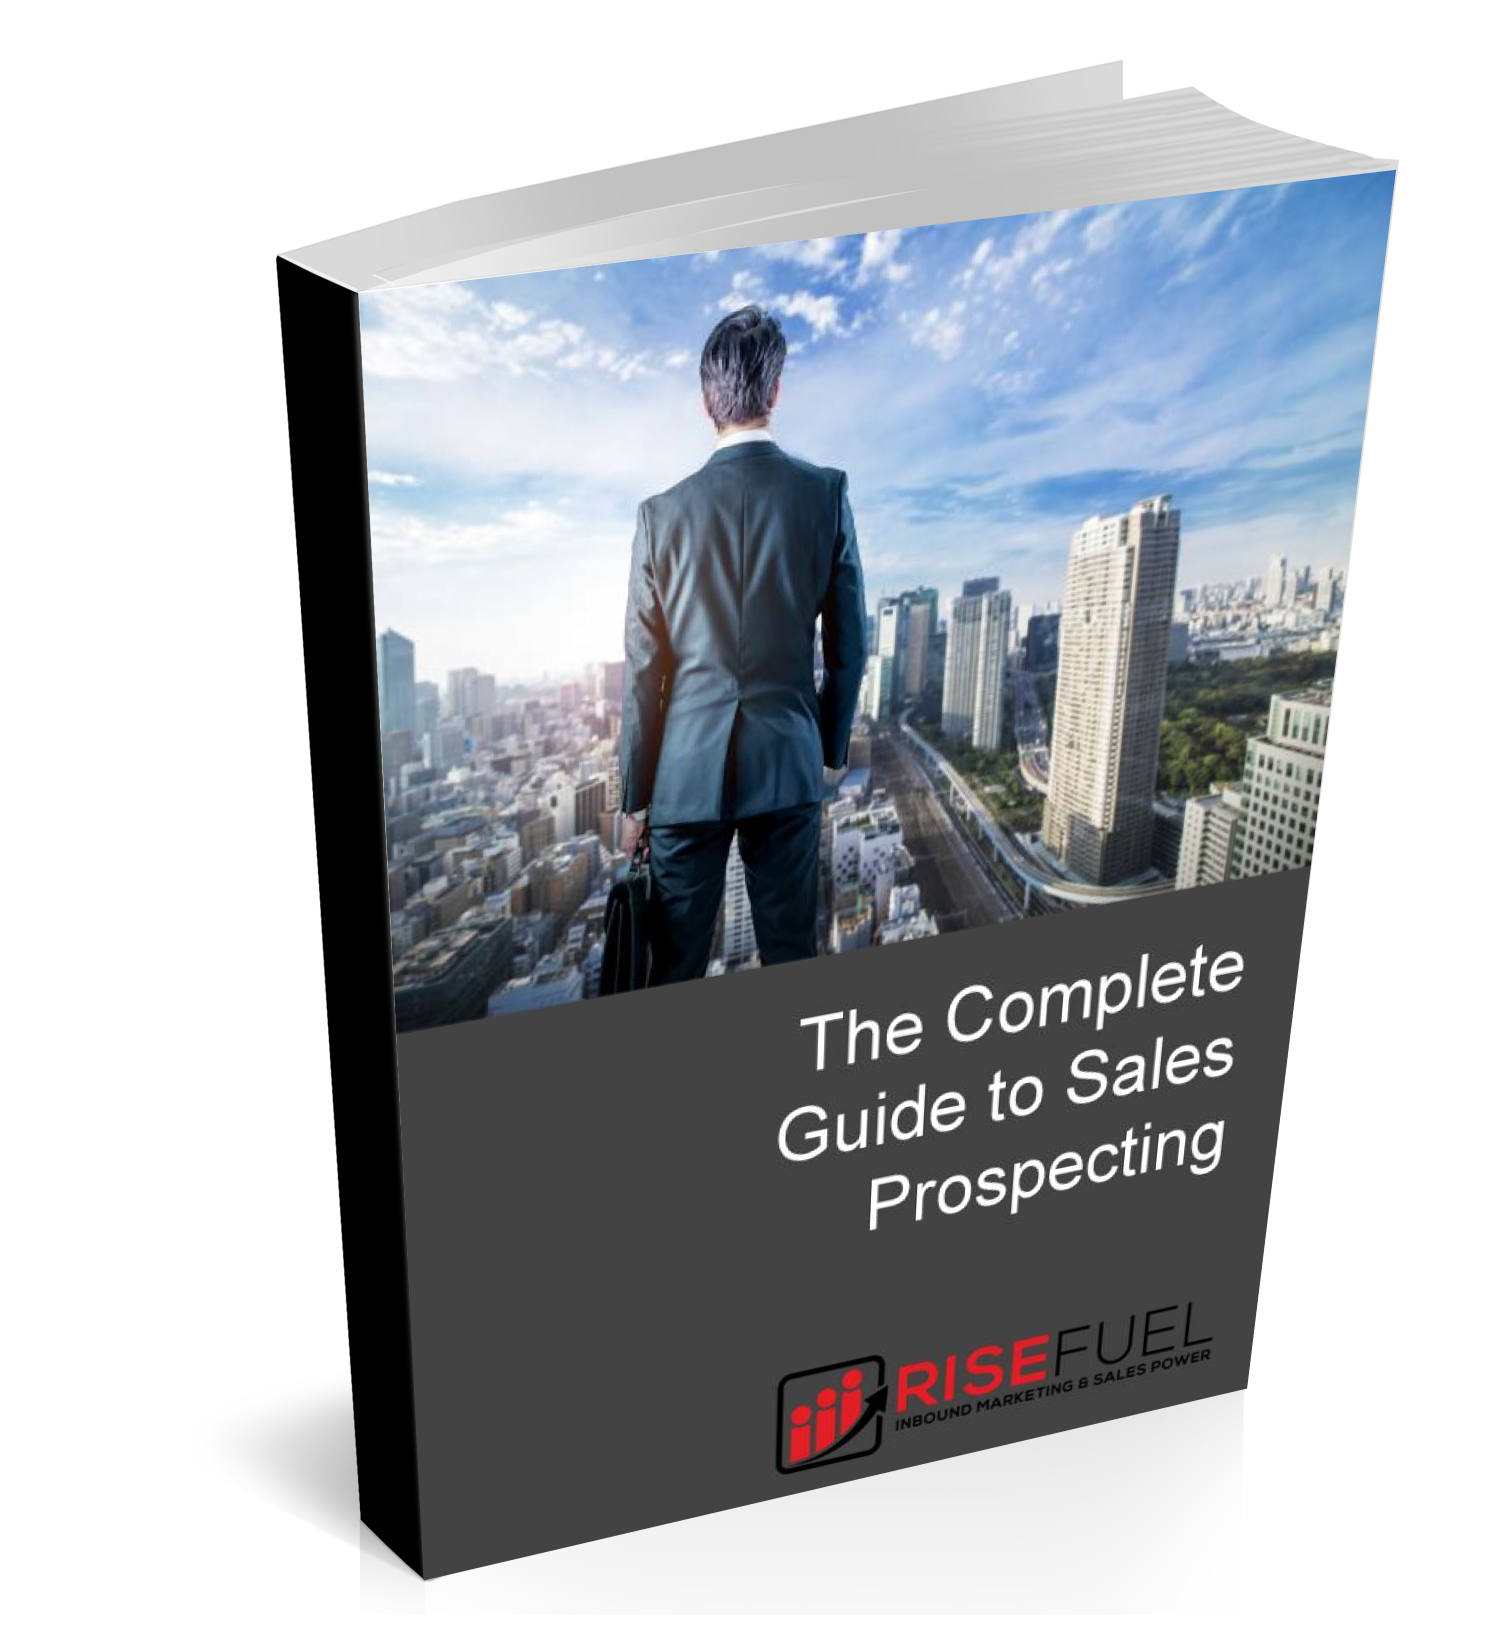 guide to sales prospecting